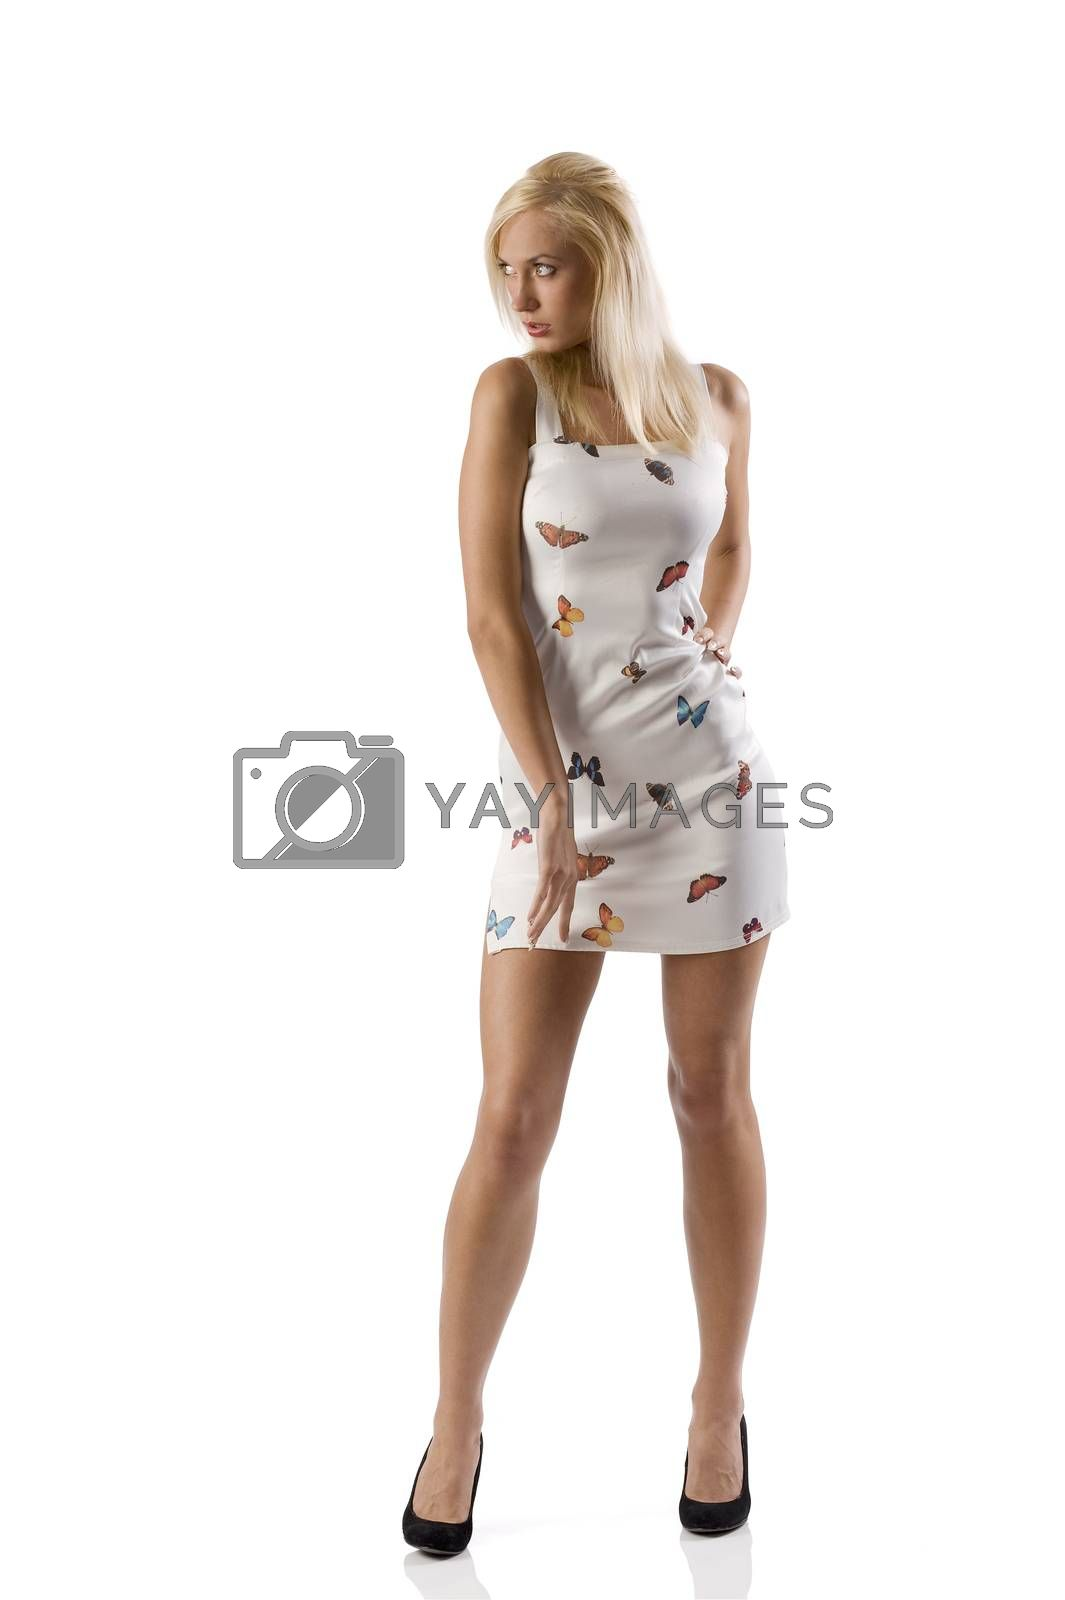 Royalty free image of sexy blond with white dress by fotoCD